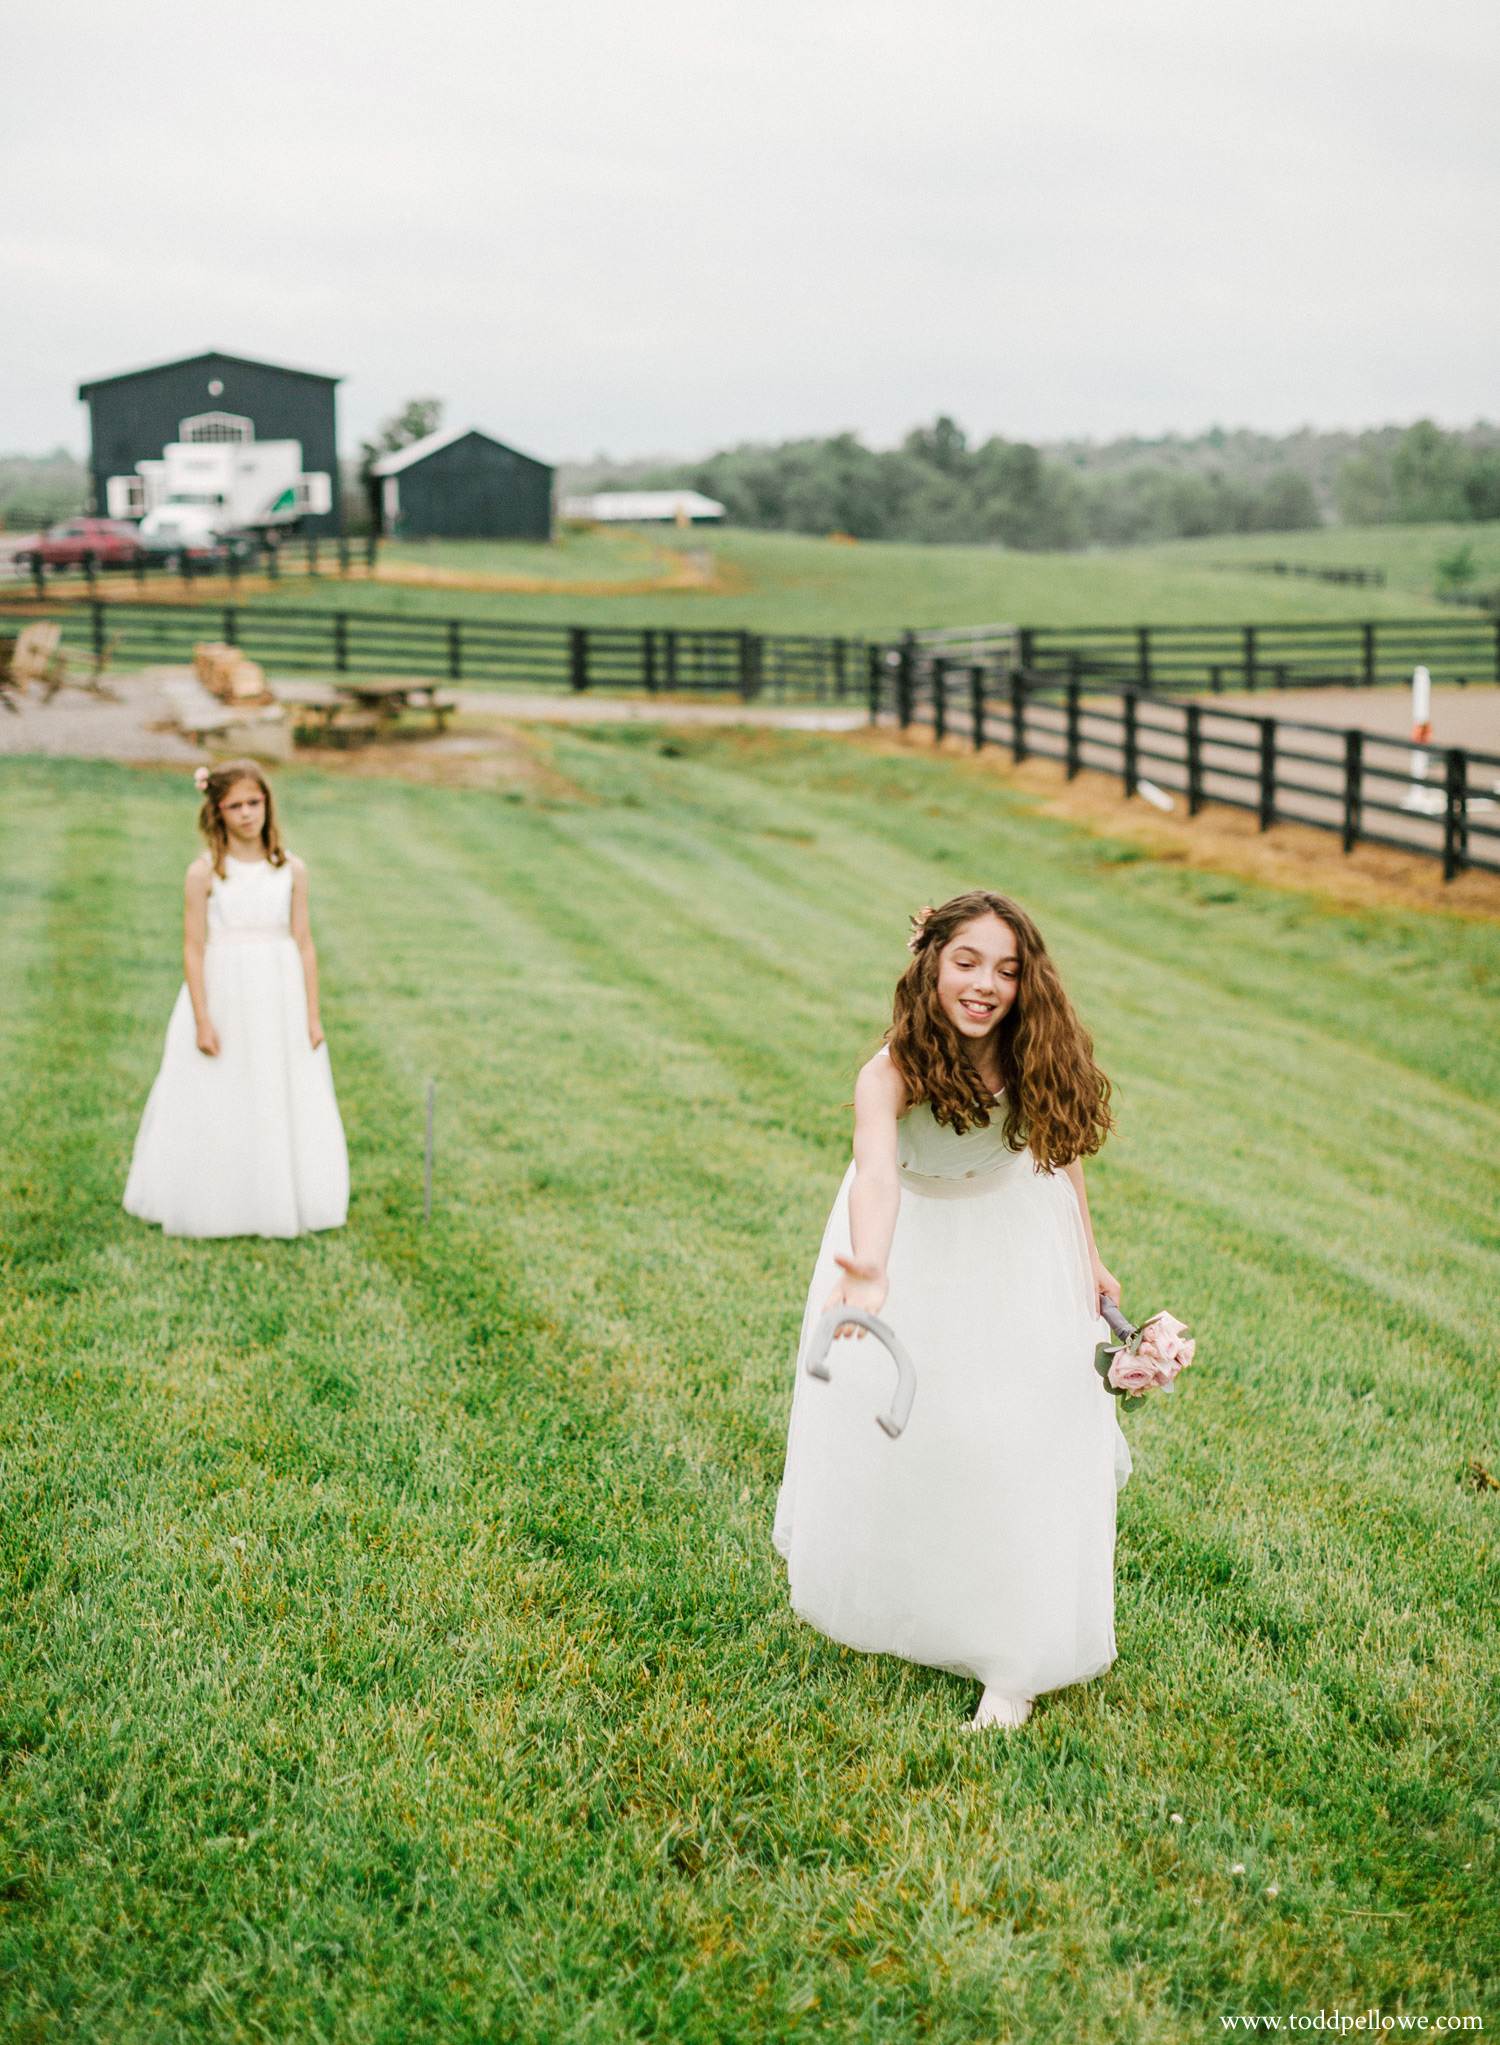 42-kentucky-farm-wedding-photography-473.jpg